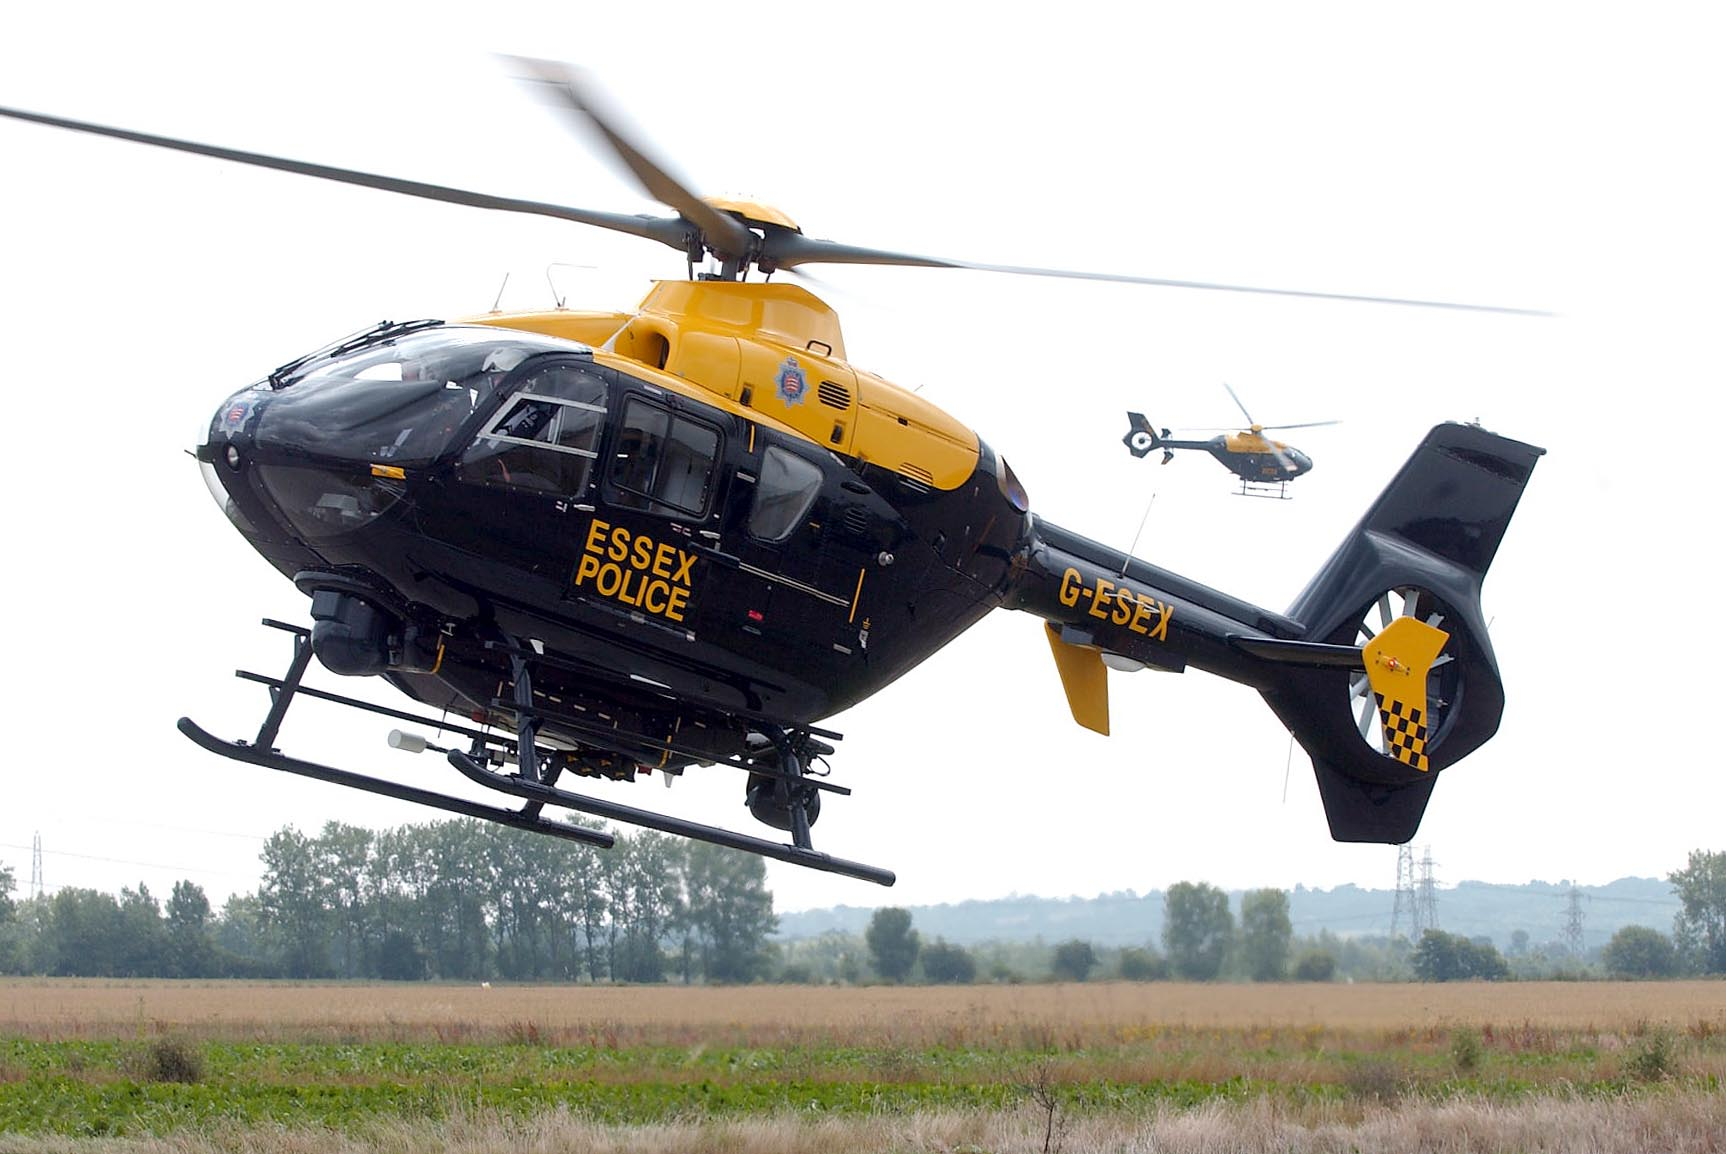 Essex Police Air Support Unit began in the 1990s. Our helicopter can also help other police forces such as Kent and Suffolk who are close by.